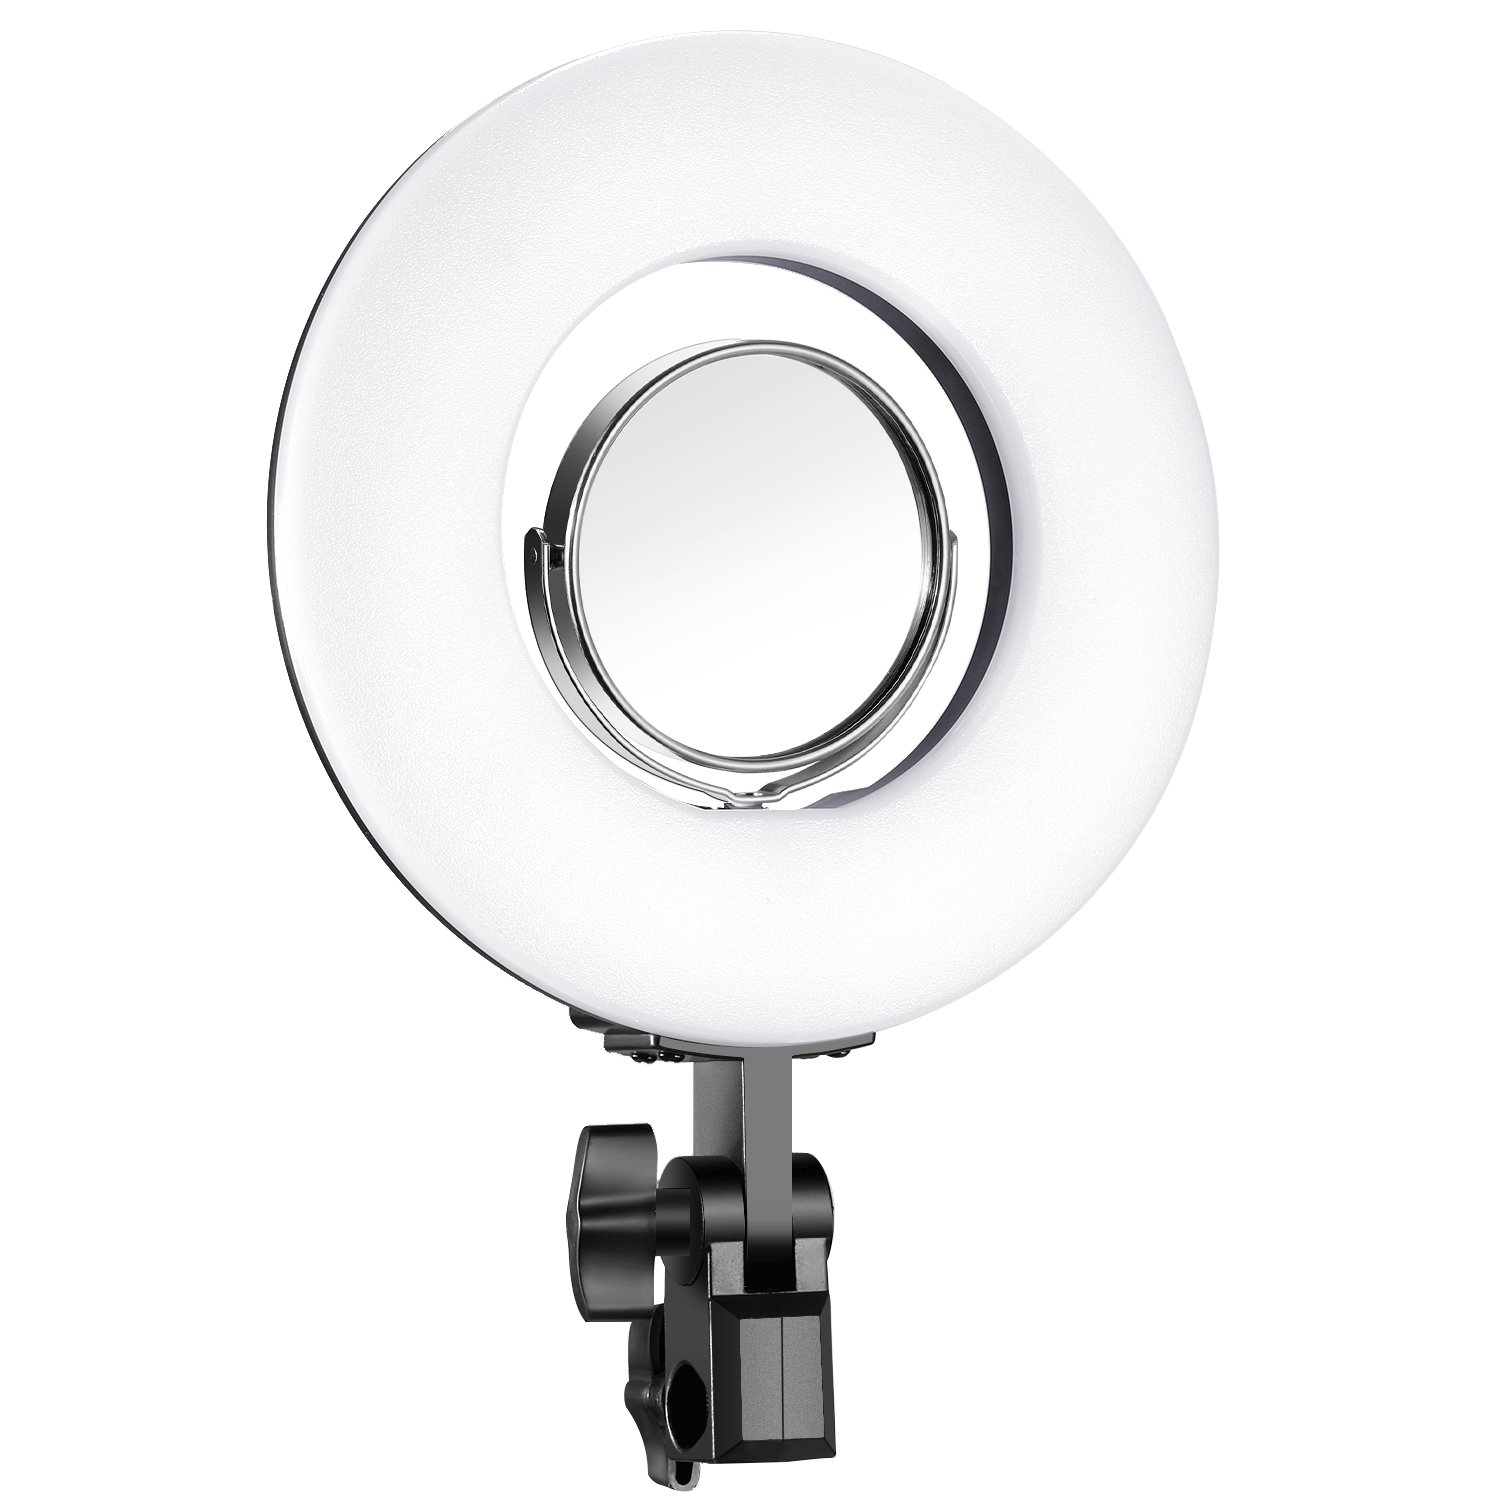 Neewer Dimmable 8-inch Mini LED Ring Light with Flexible Gooseneck, Desk Clamp, 3.5-inch Mirror, Phone Clip, Mini Tripod for Beauty Blog Make up Selfie Portrait Video Photography(No Carrying Bag) 10093563